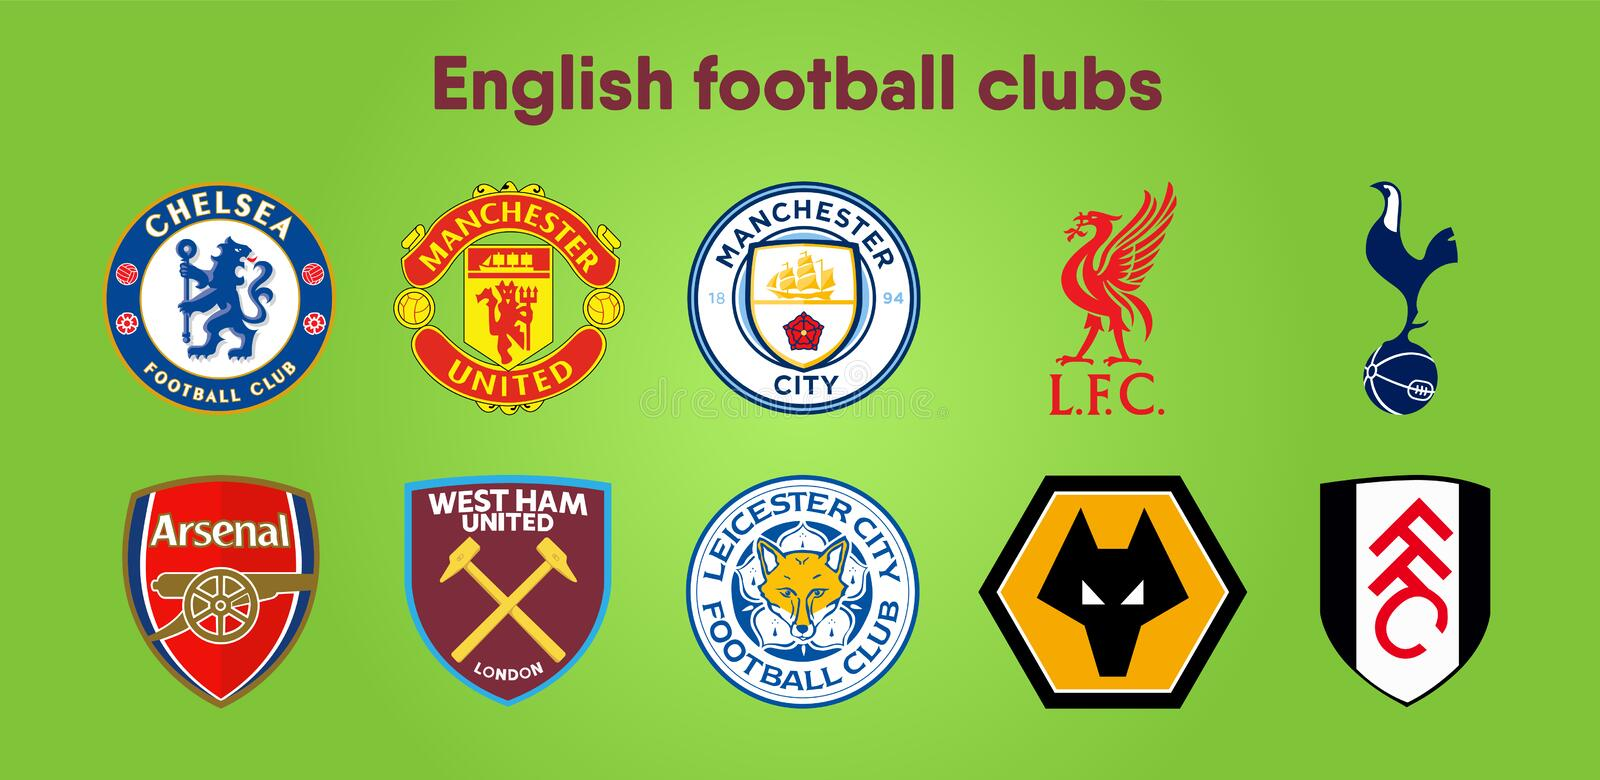 Football club Logos. Set of ten different vector designs for premier league English Football Club badges or emblems in a stock illustration